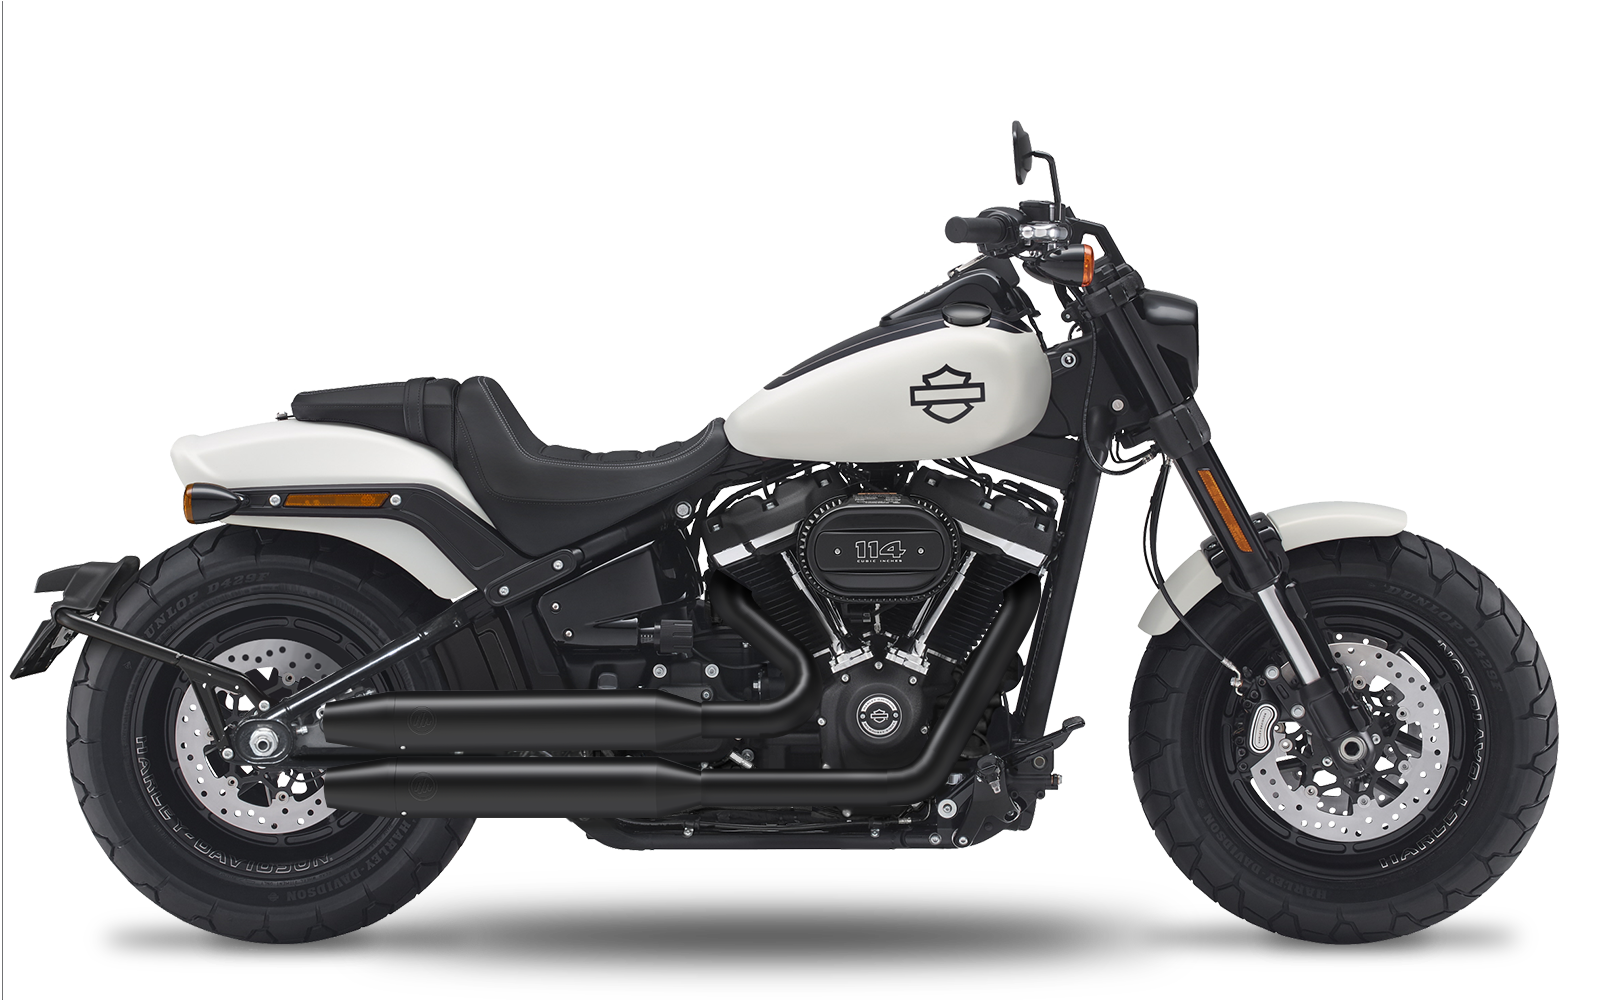 Softail - Fat Bob 114 / S - ME114 - 2018-2020 - Complete systems